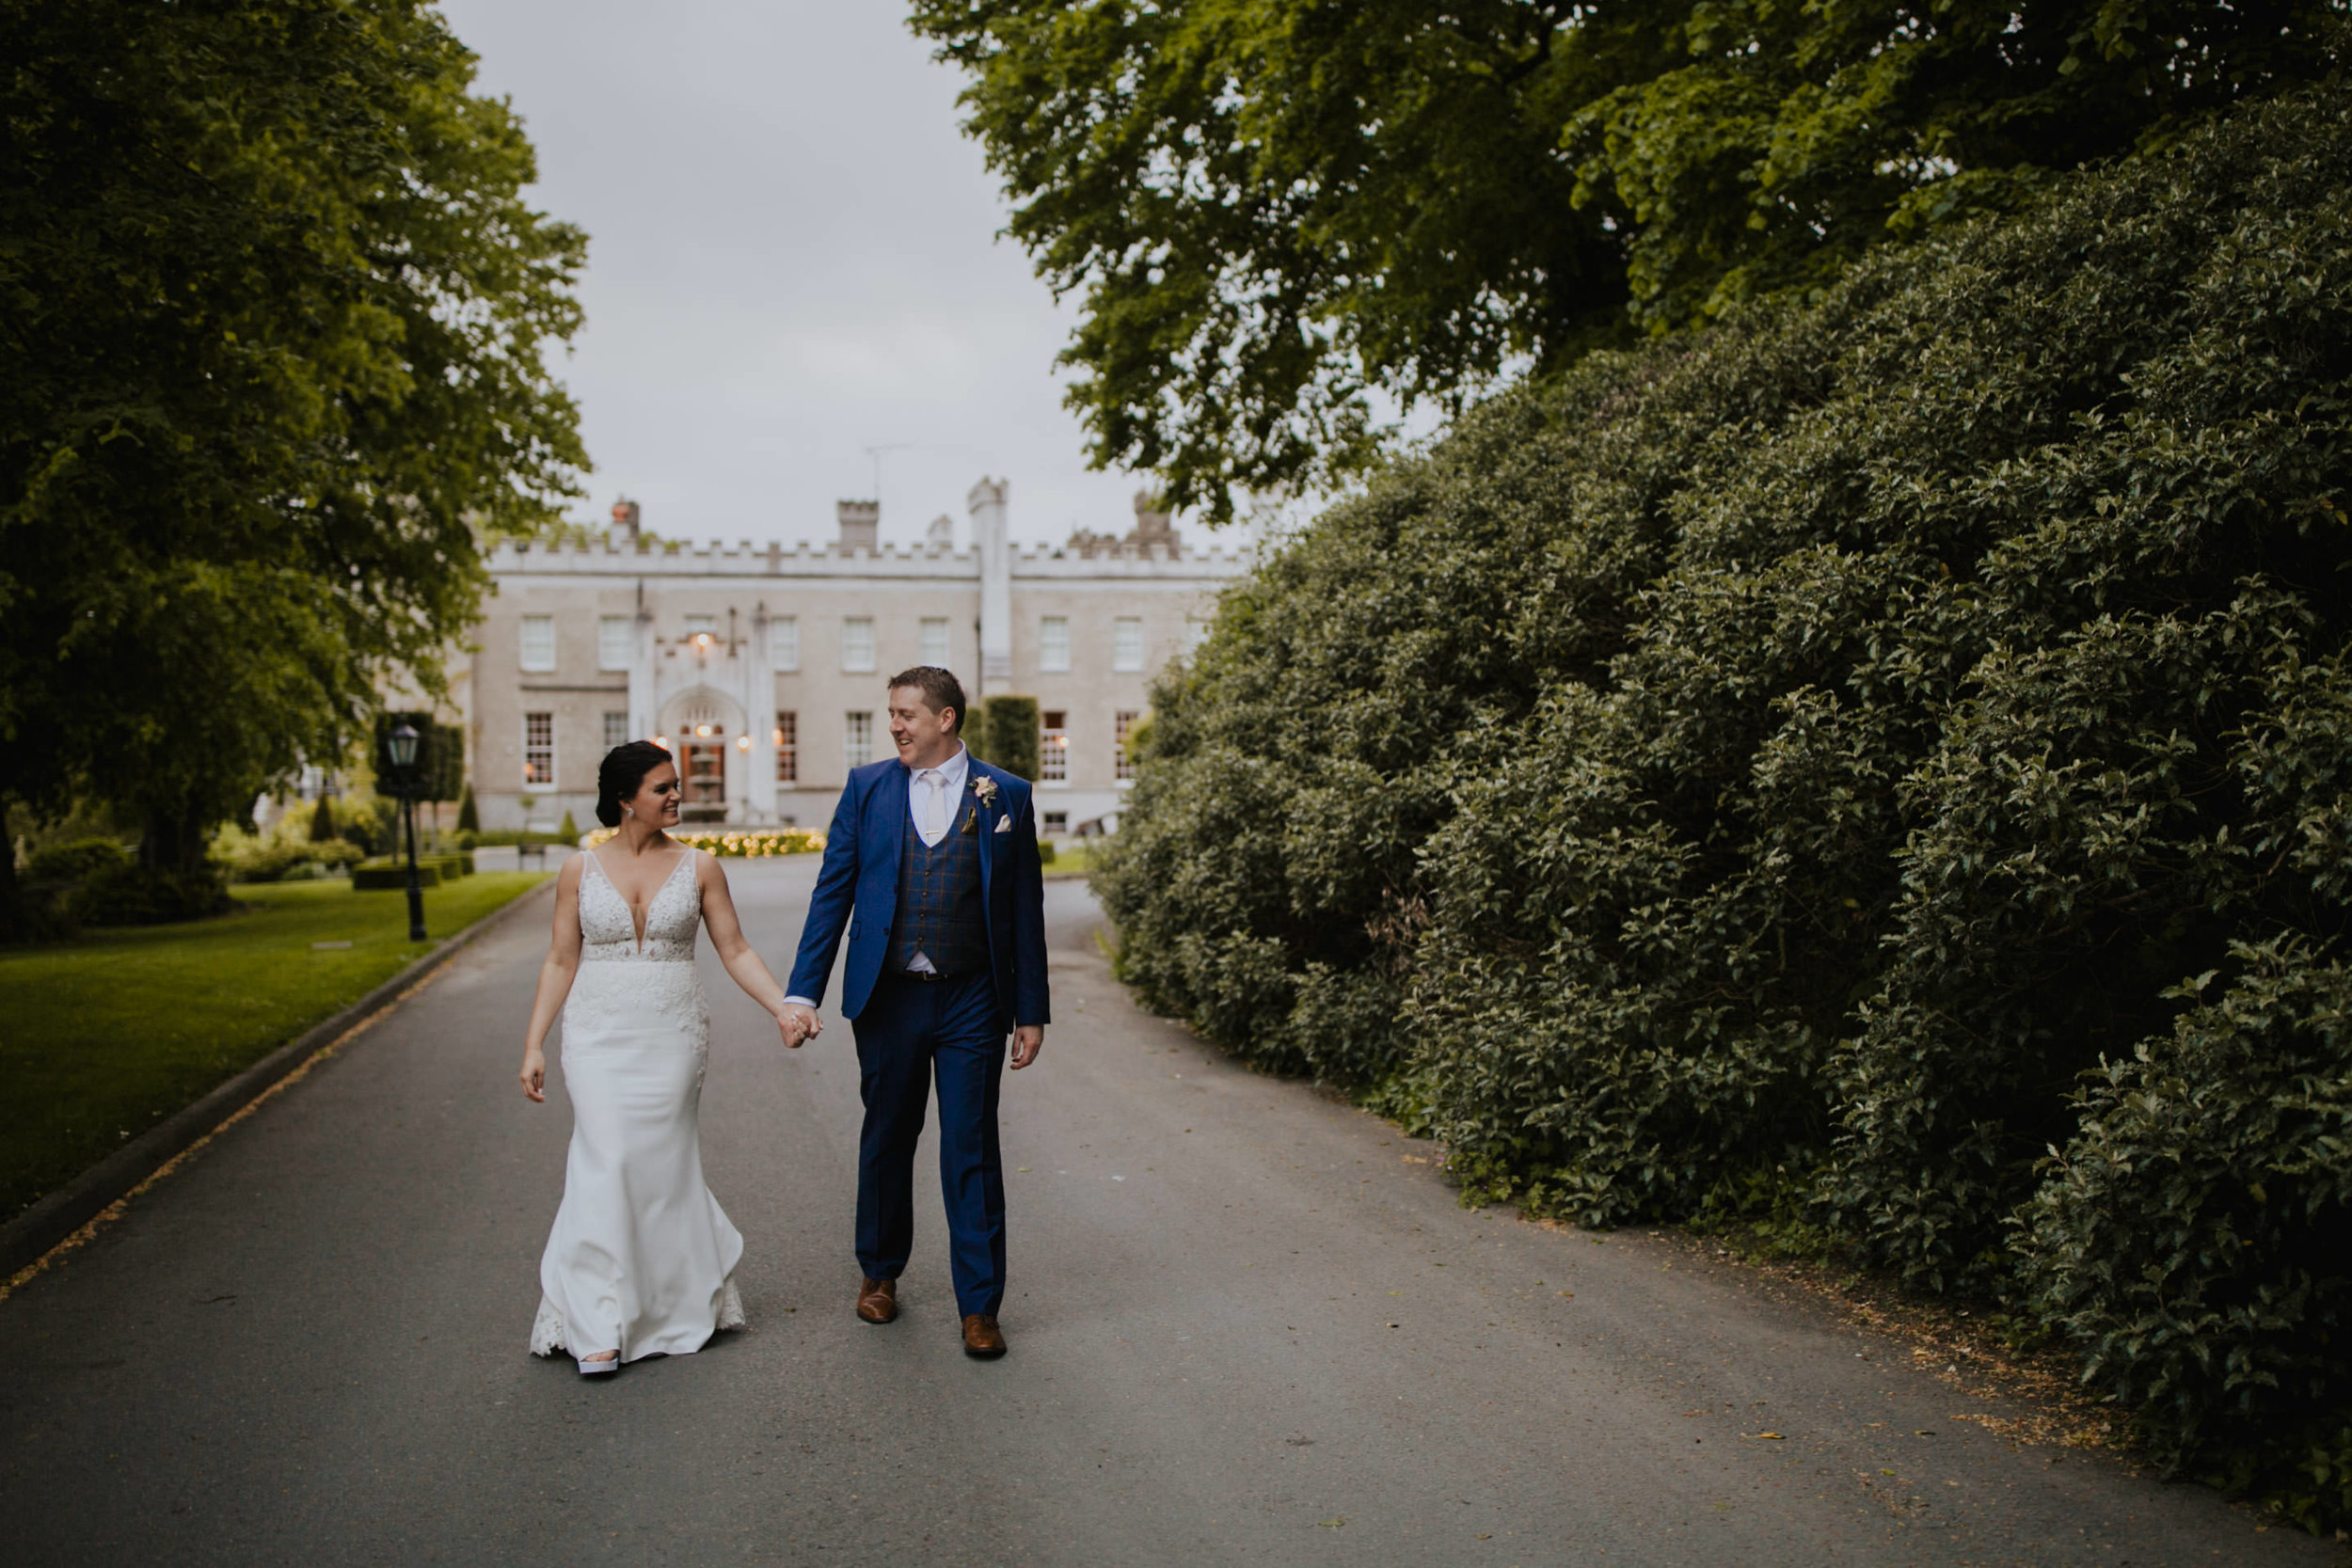 c+j_louth_wedding_photographer_bellingham_castle_livia_figueiredo_13.jpg